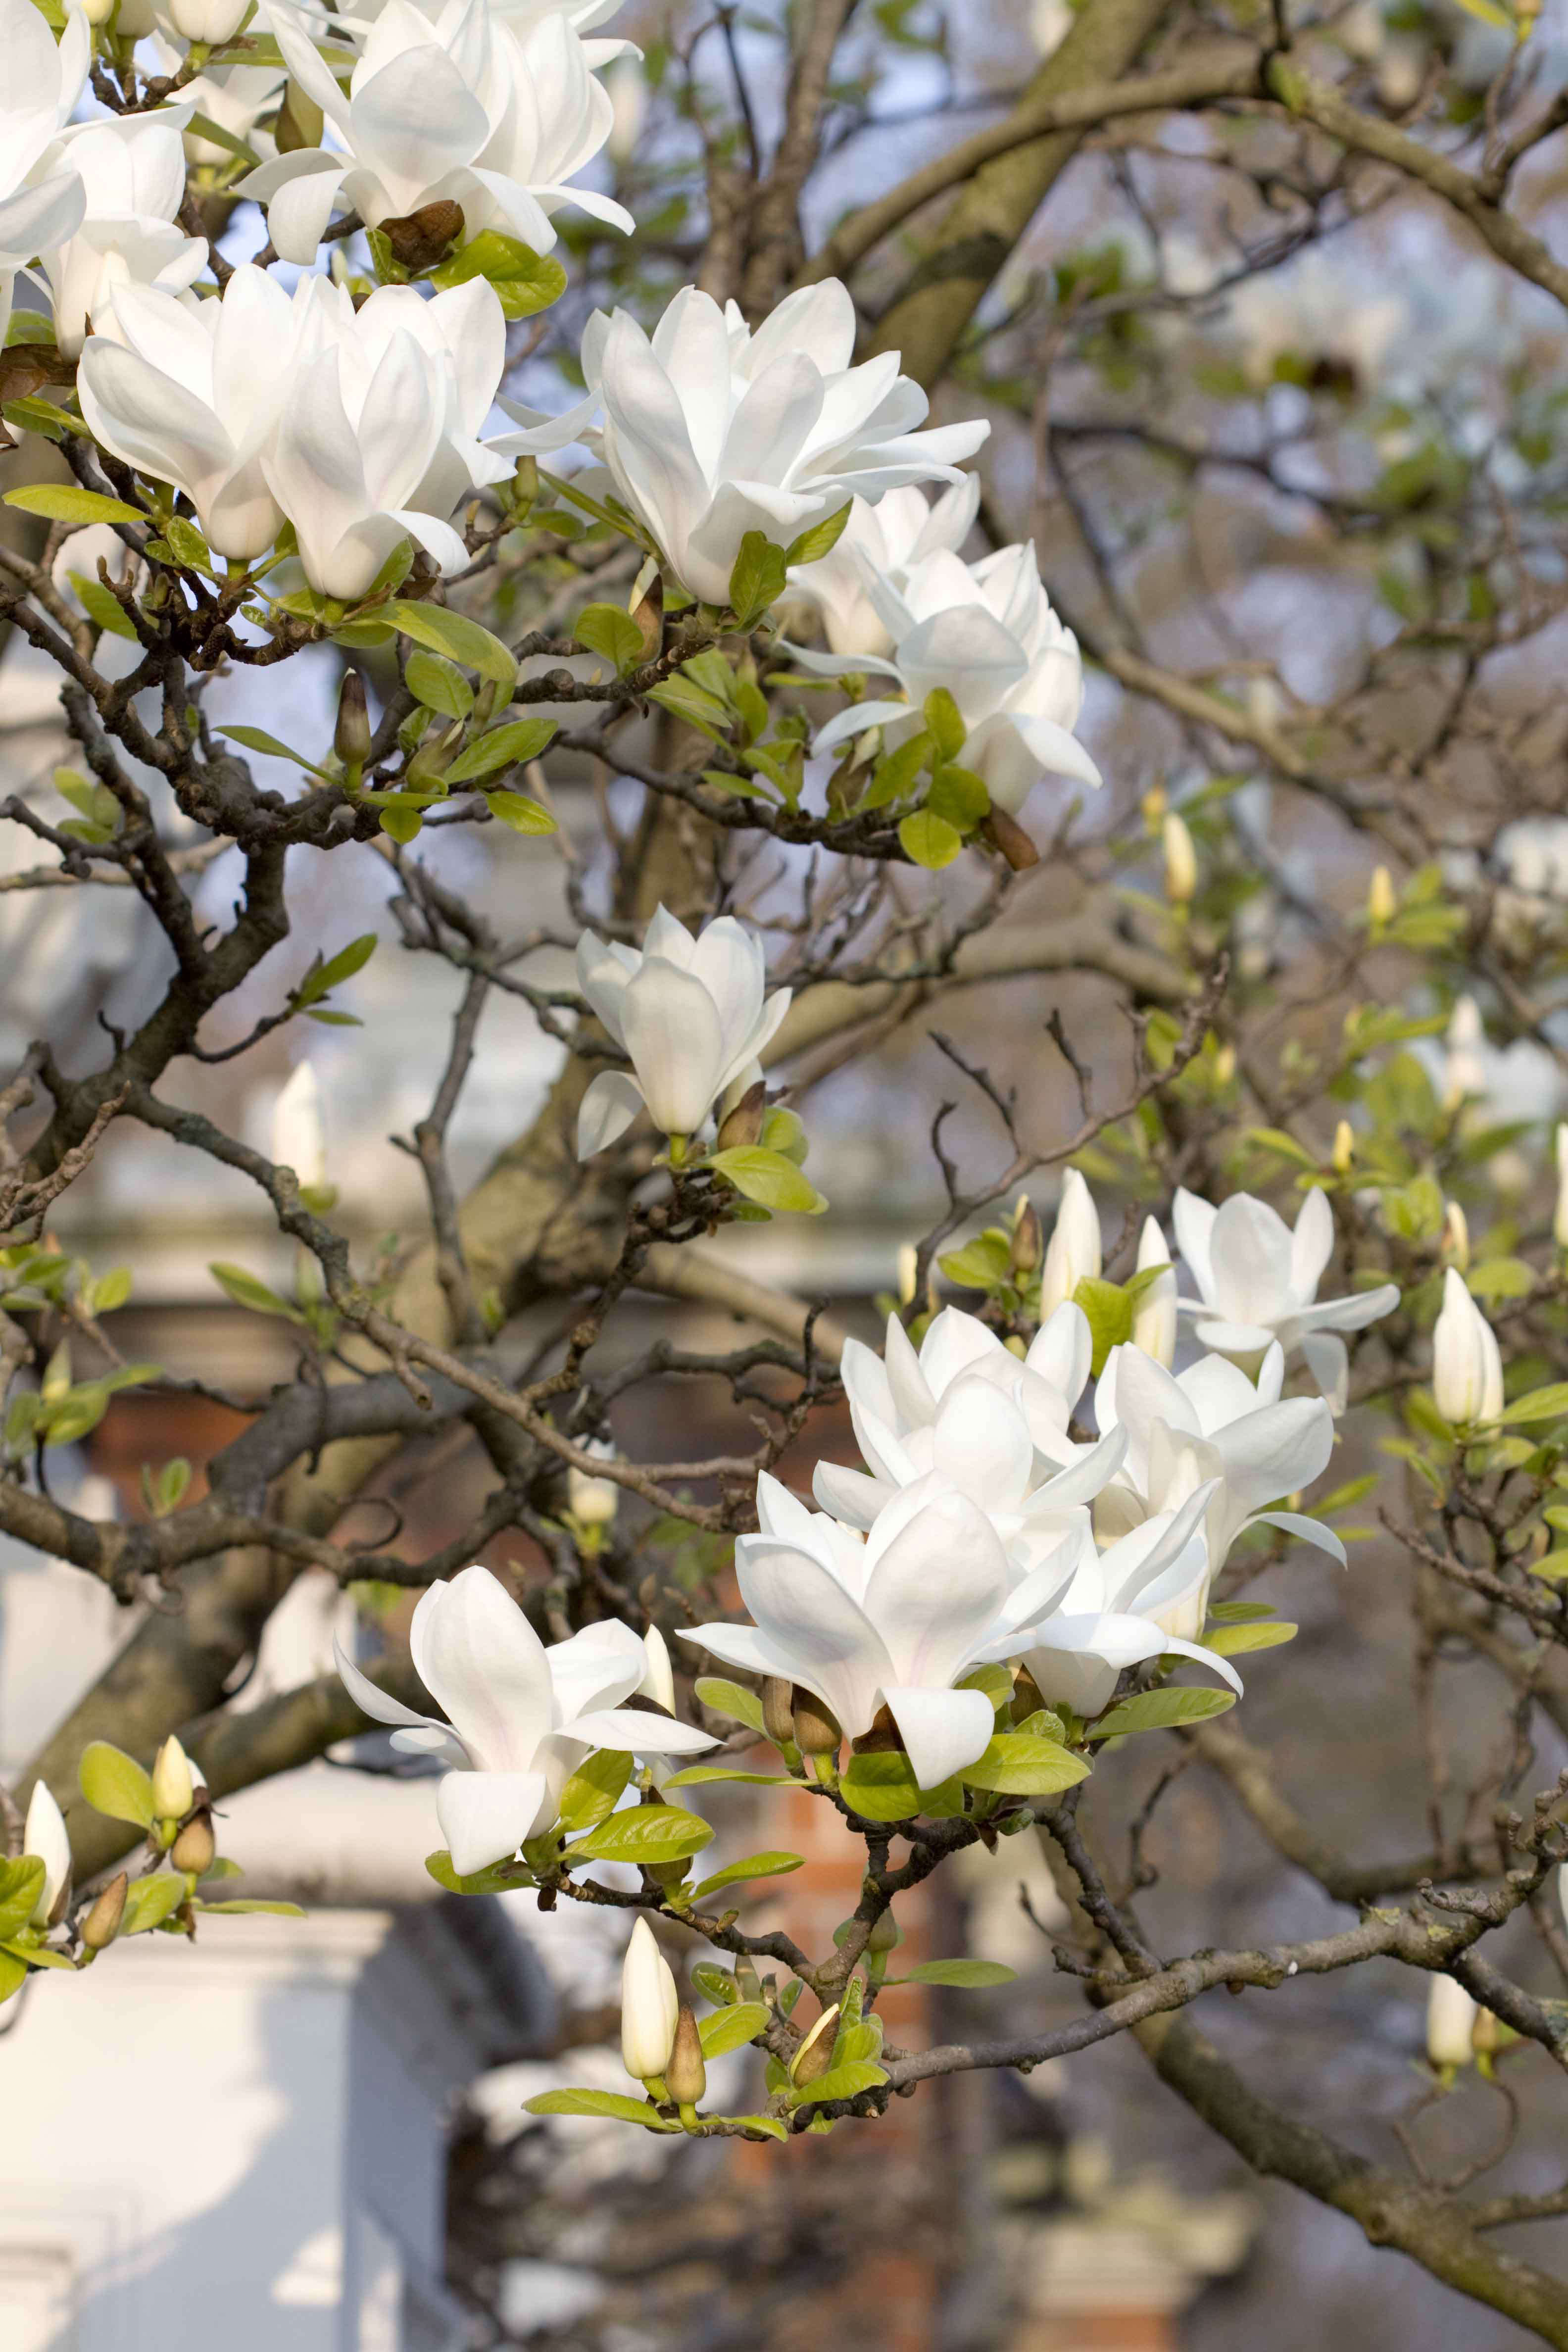 Insiders London Where To See Magnolias In Bloom Gardenista